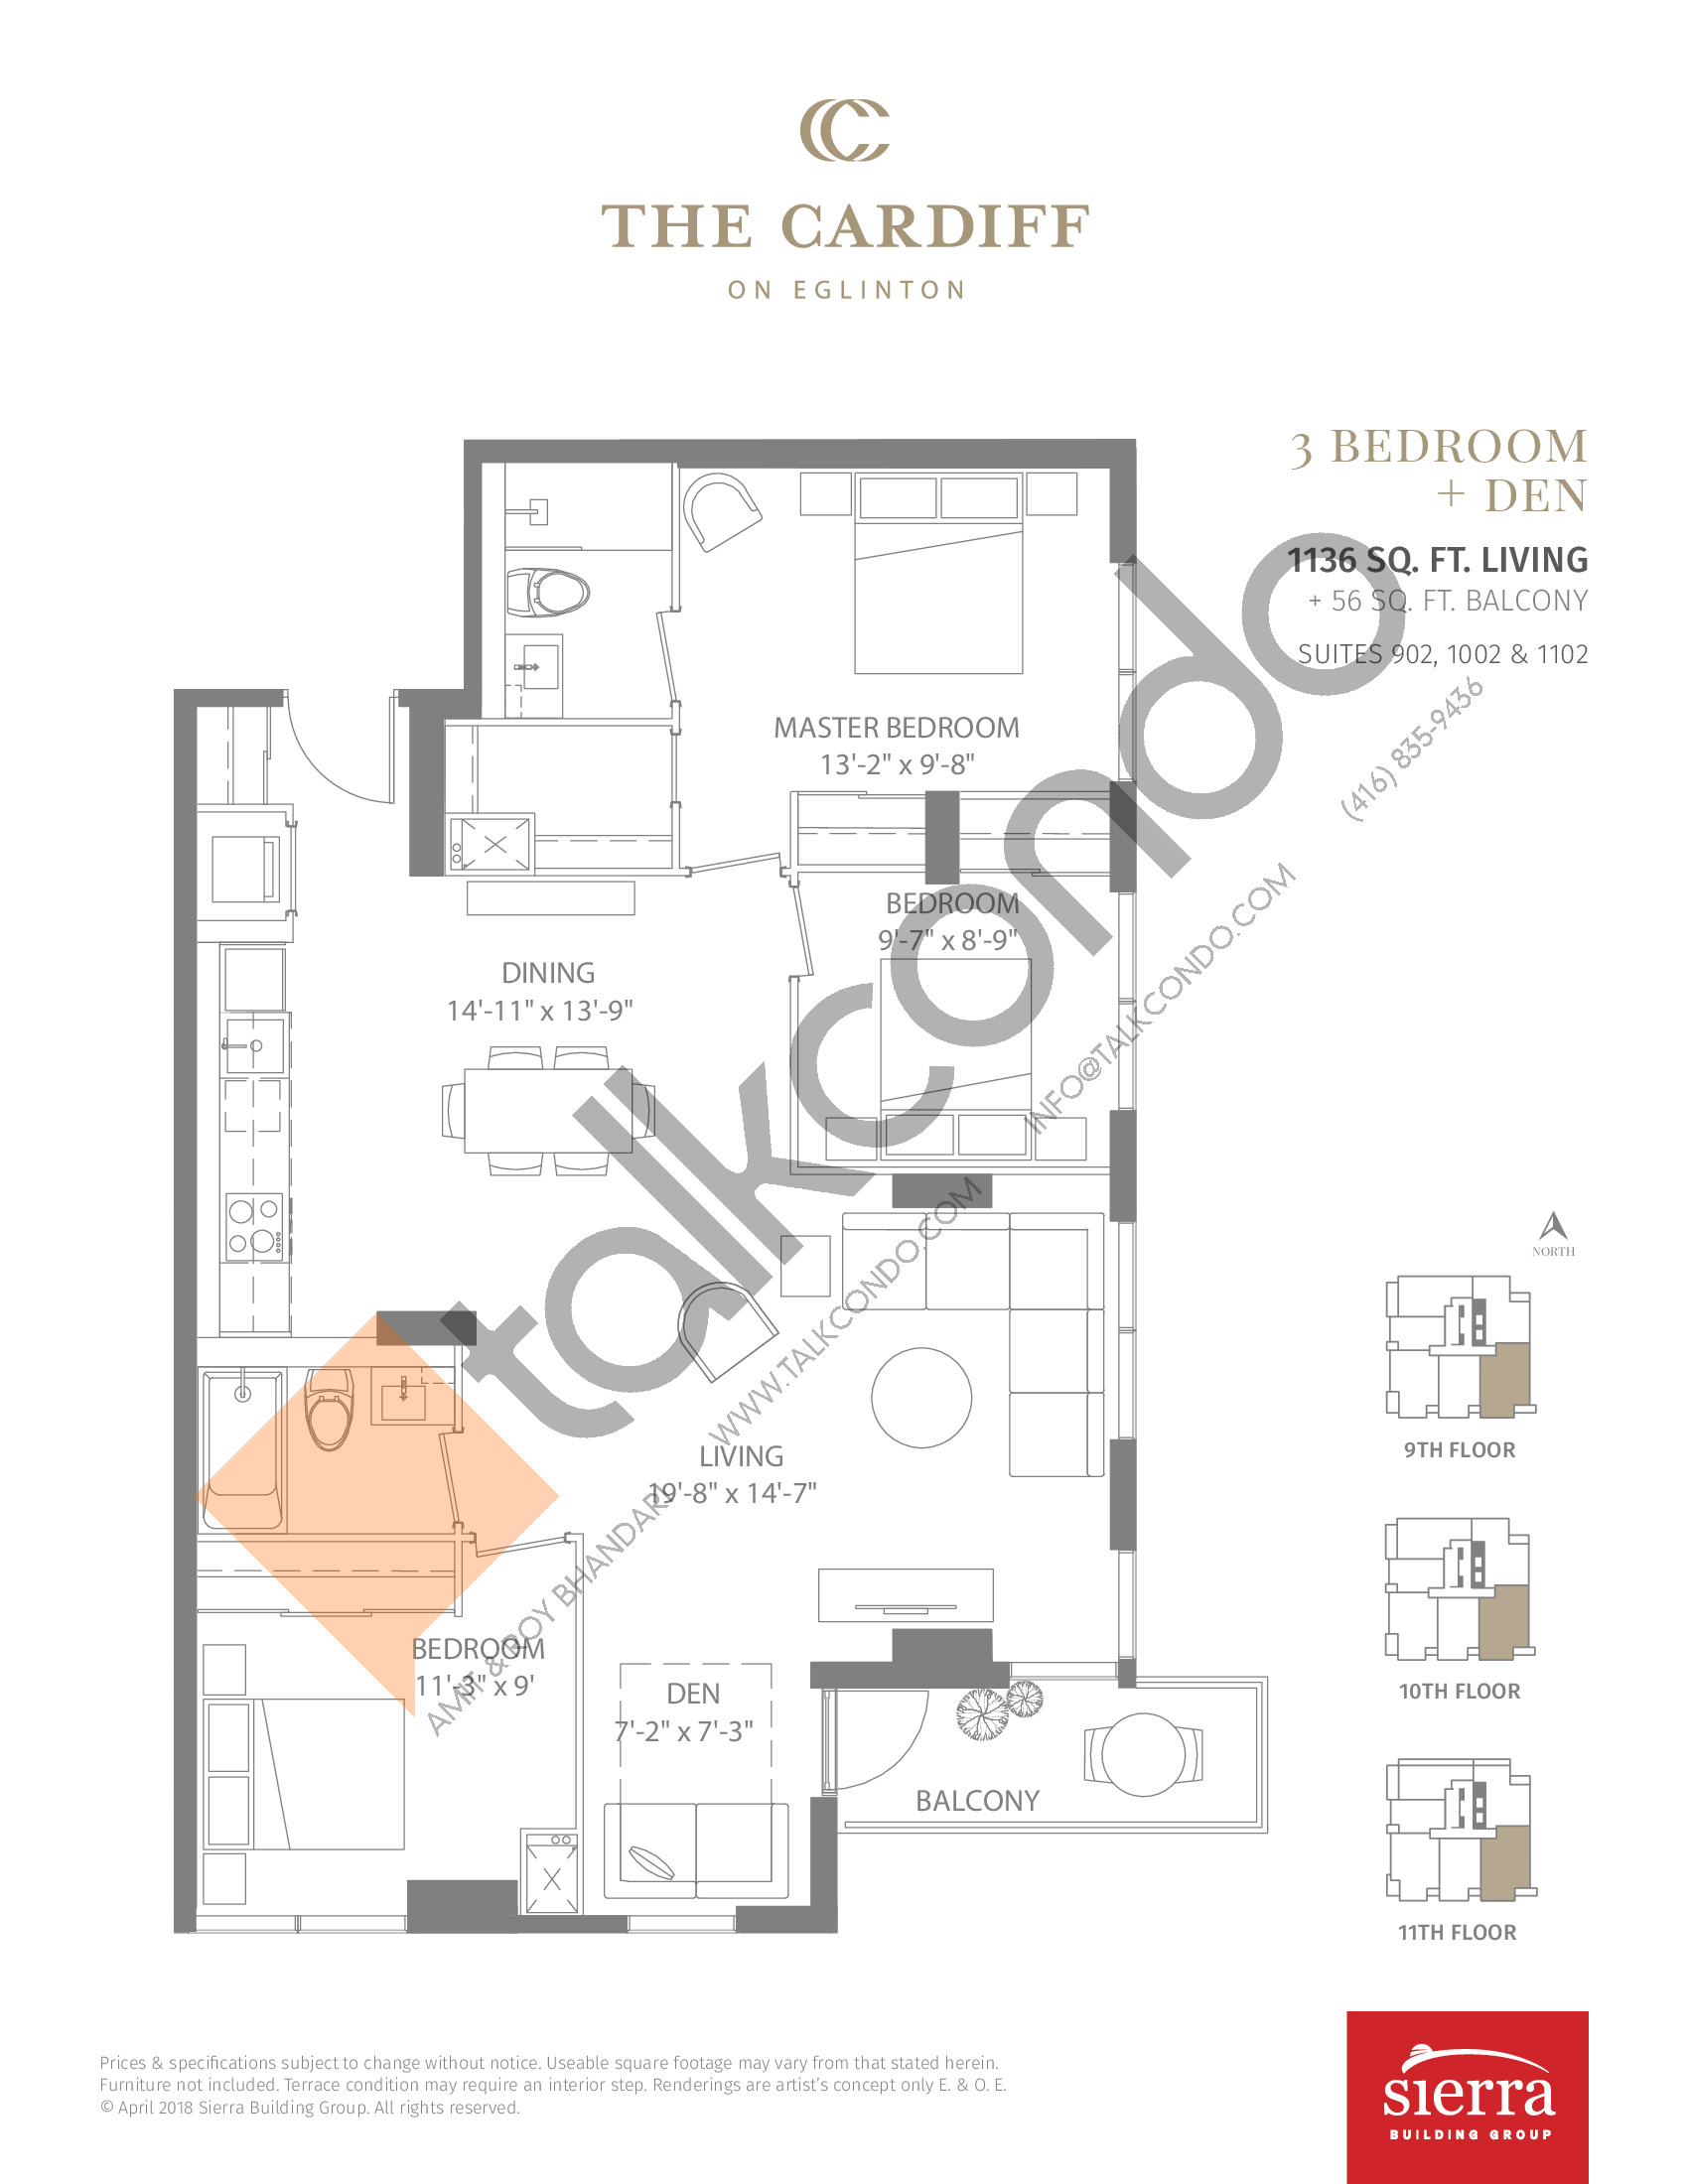 Suites 902, 1002 & 1102 Floor Plan at The Cardiff Condos on Eglinton - 1136 sq.ft